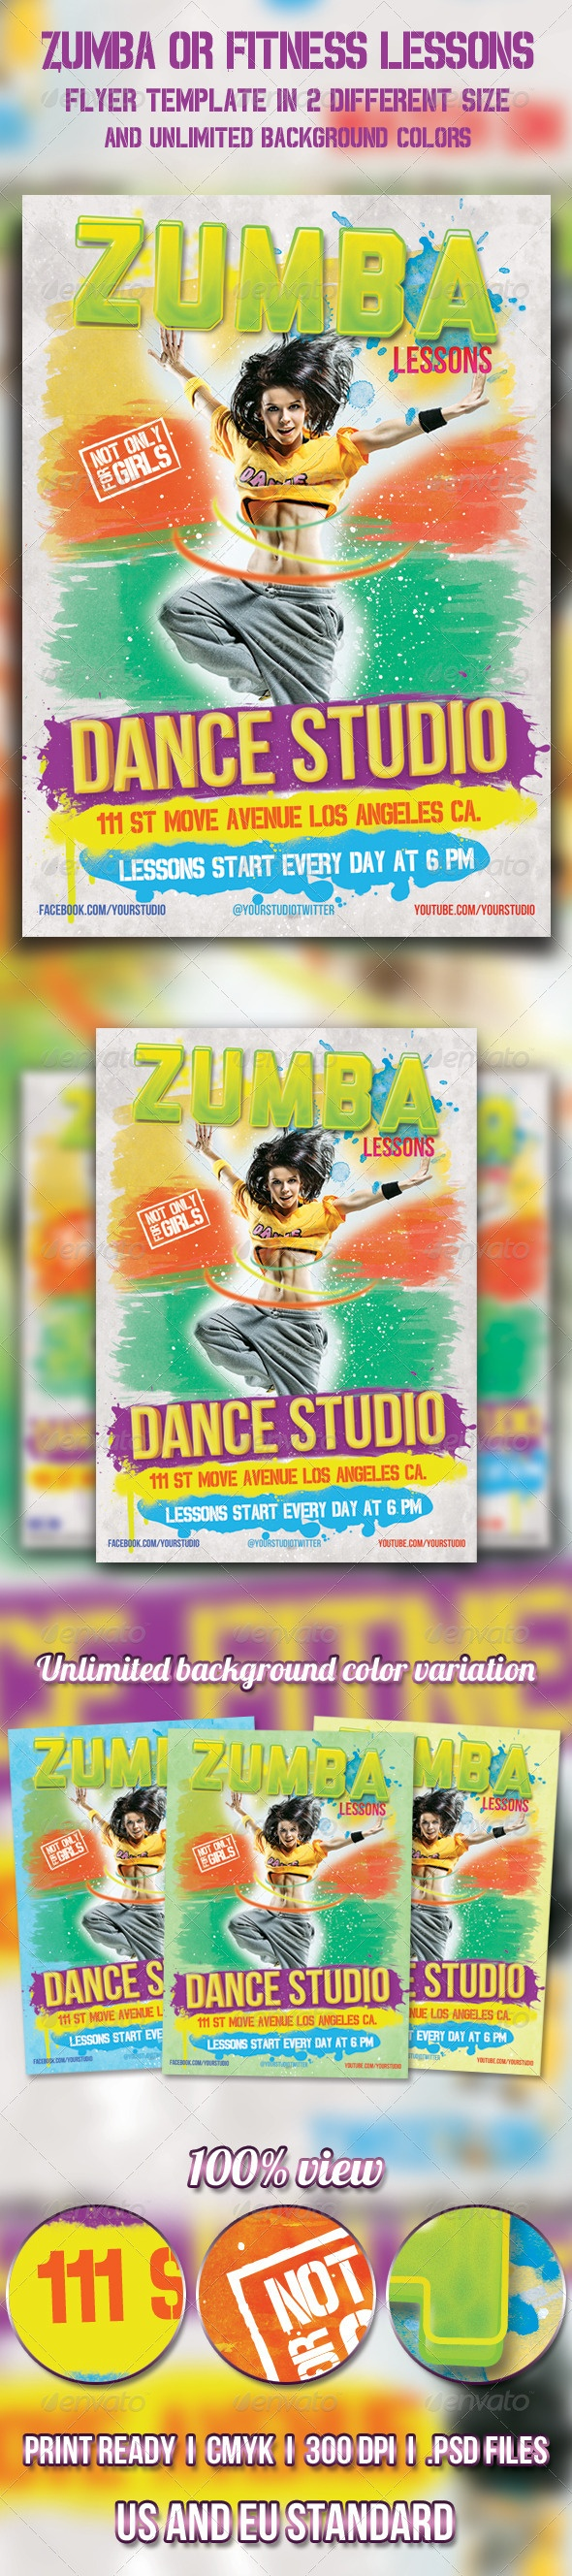 zumba flyer fitness  dance  dance flyer  fitness  fitness